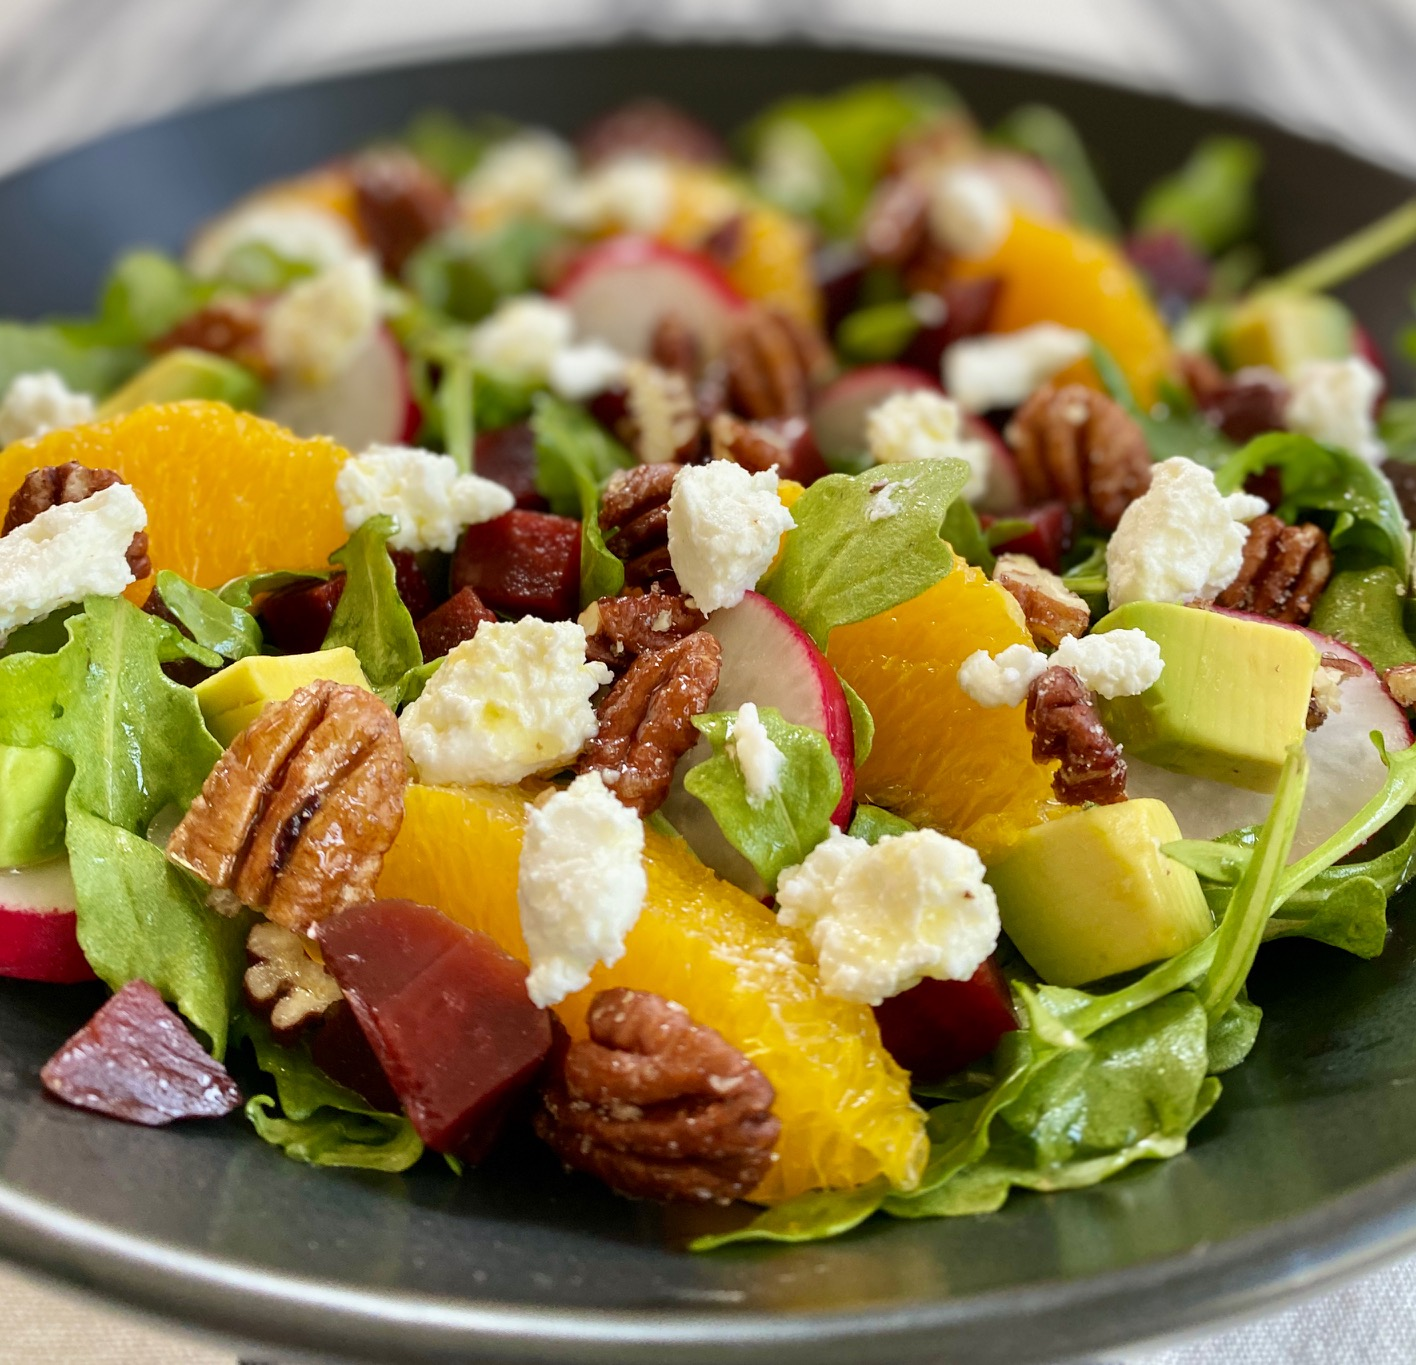 Arugula Beet Salad with Goat Cheese